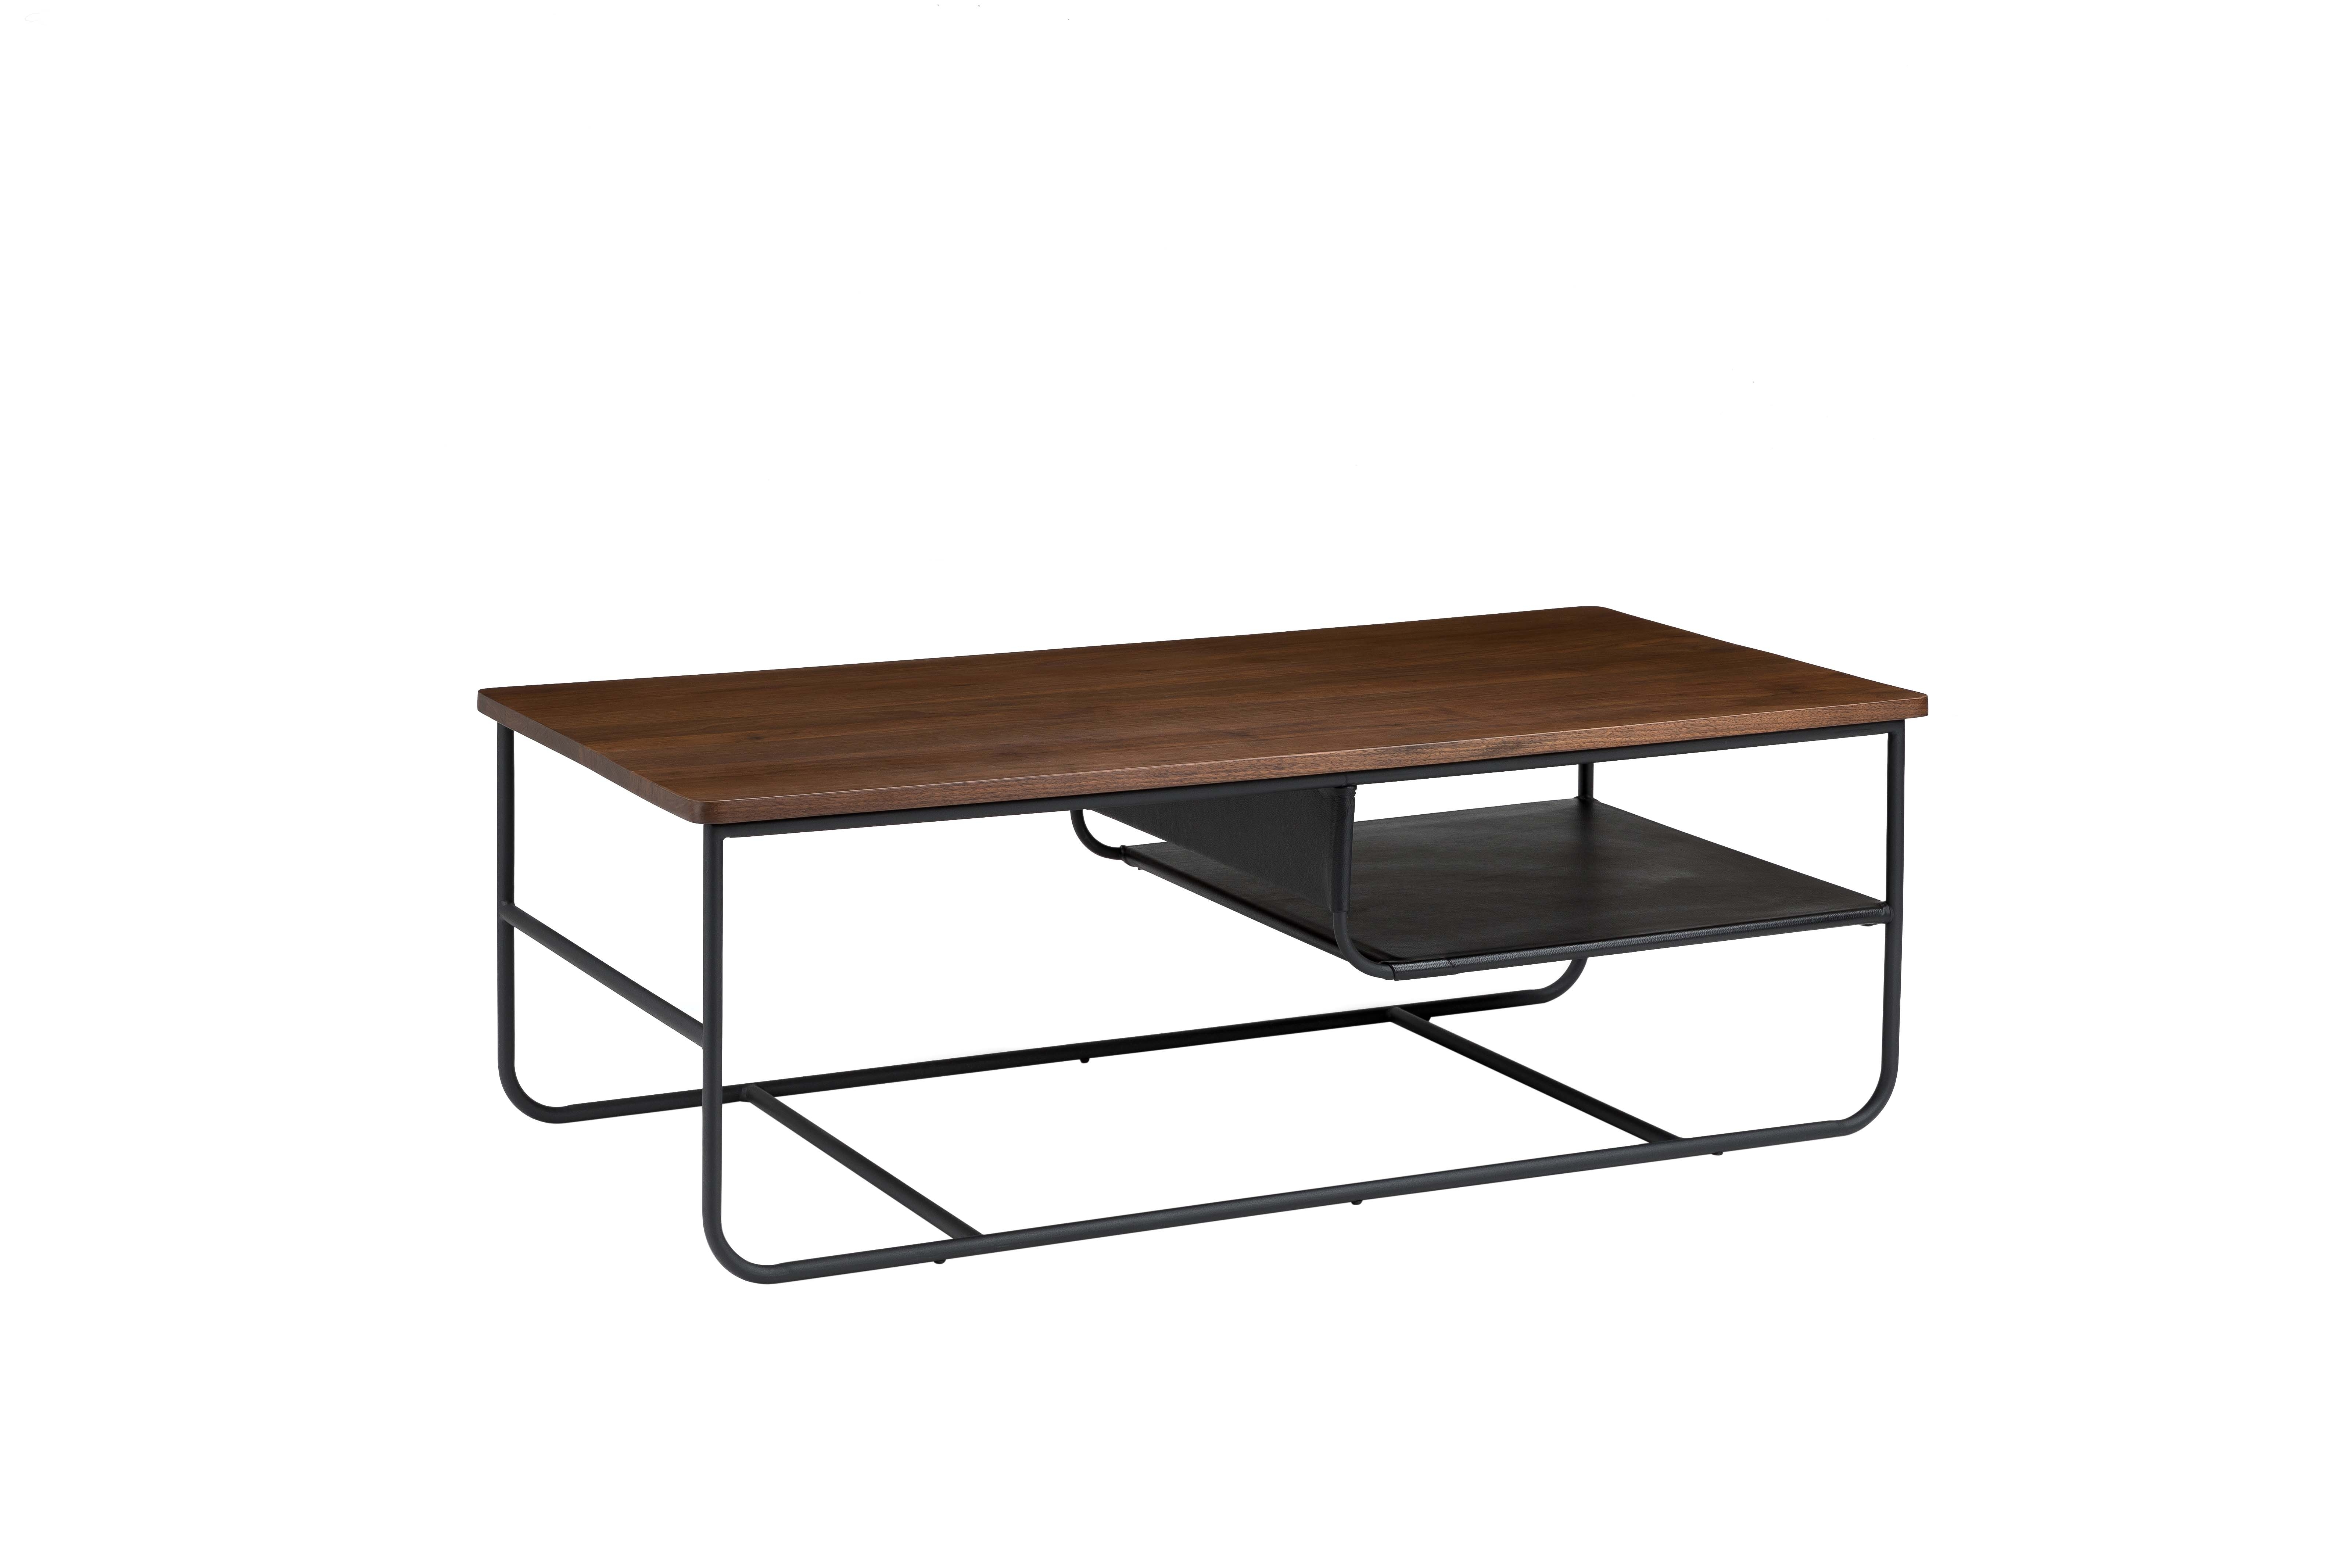 Newest Spin Rotating Coffee Tables Intended For 6 Scene Stealing Coffee Tables We Love – Western Living Magazine (View 20 of 20)